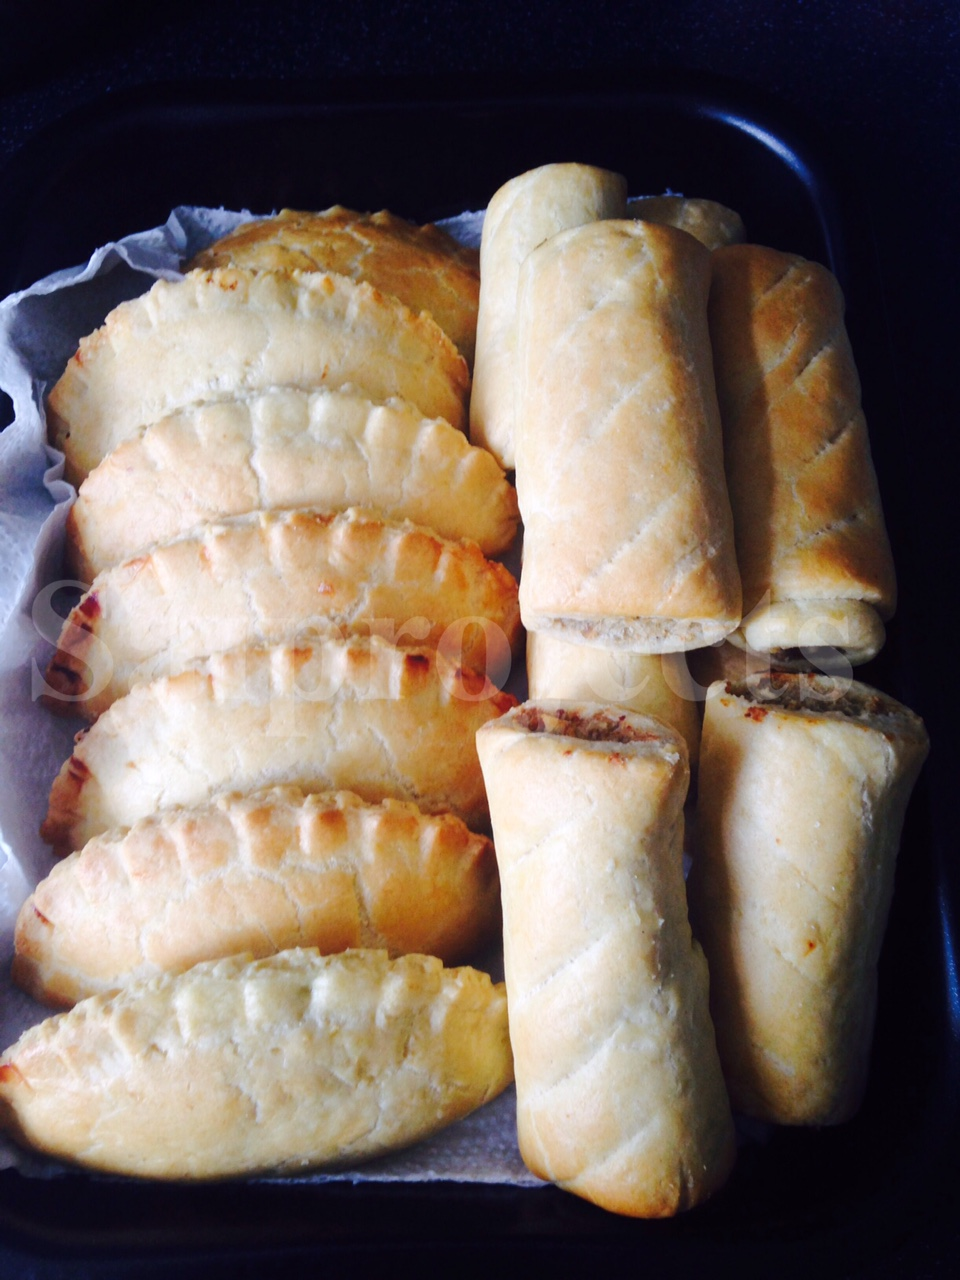 Saiprojects: Home-made Nigerian Meatpie